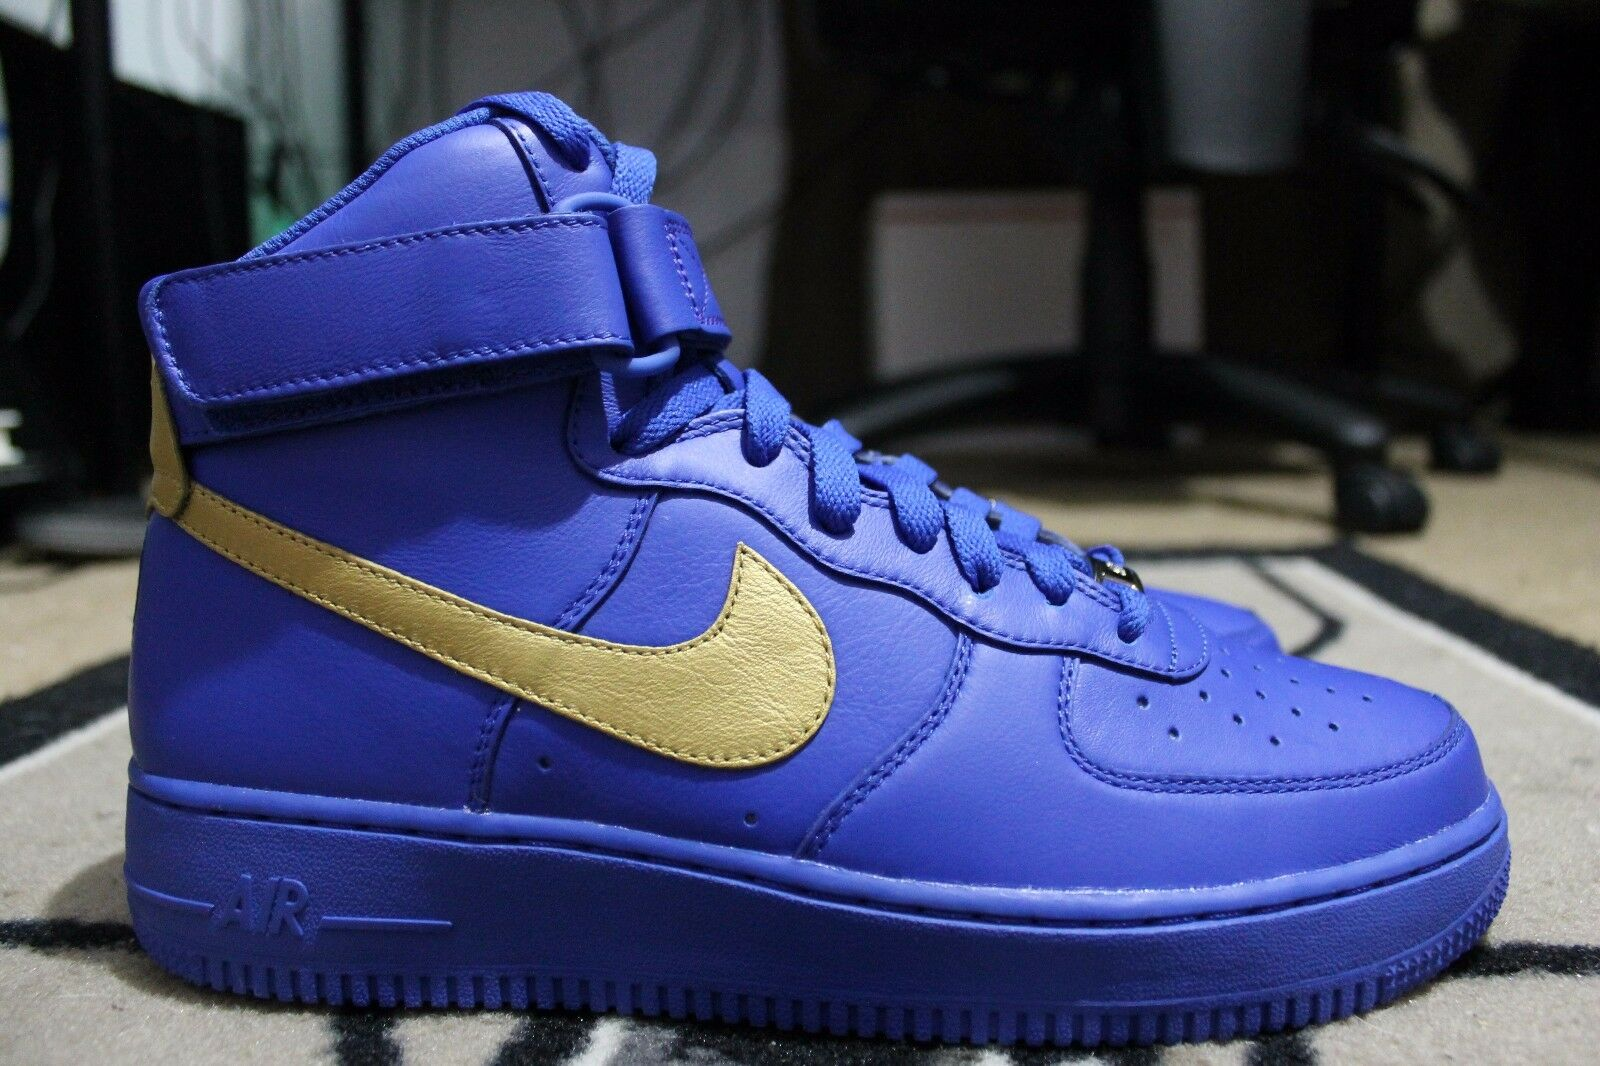 New Nike iD Air Force One 1 Hi Yeezy Size 8 Blue/Gold